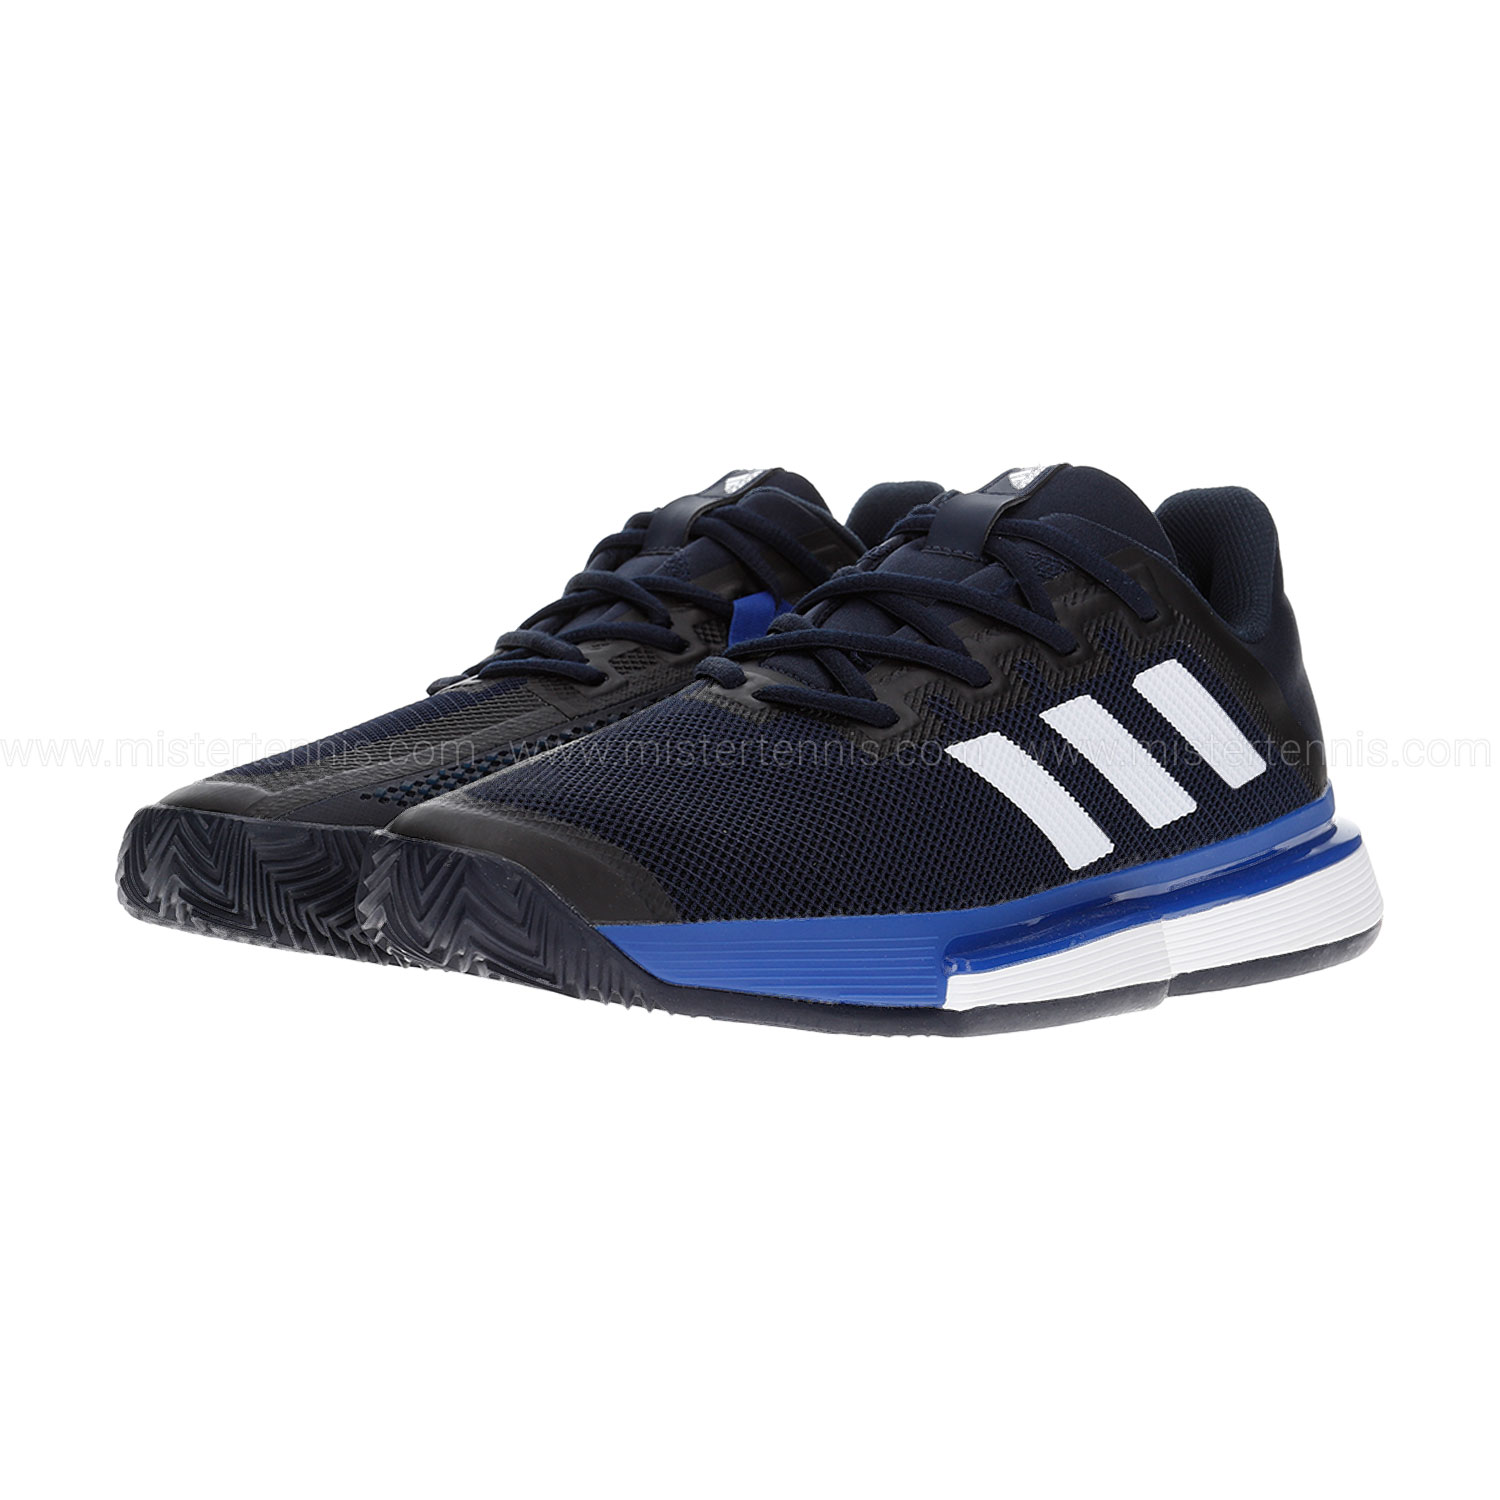 Adidas SoleMatch Bounce Clay - Legend Ink/Ftwr White/Team Royal Blue